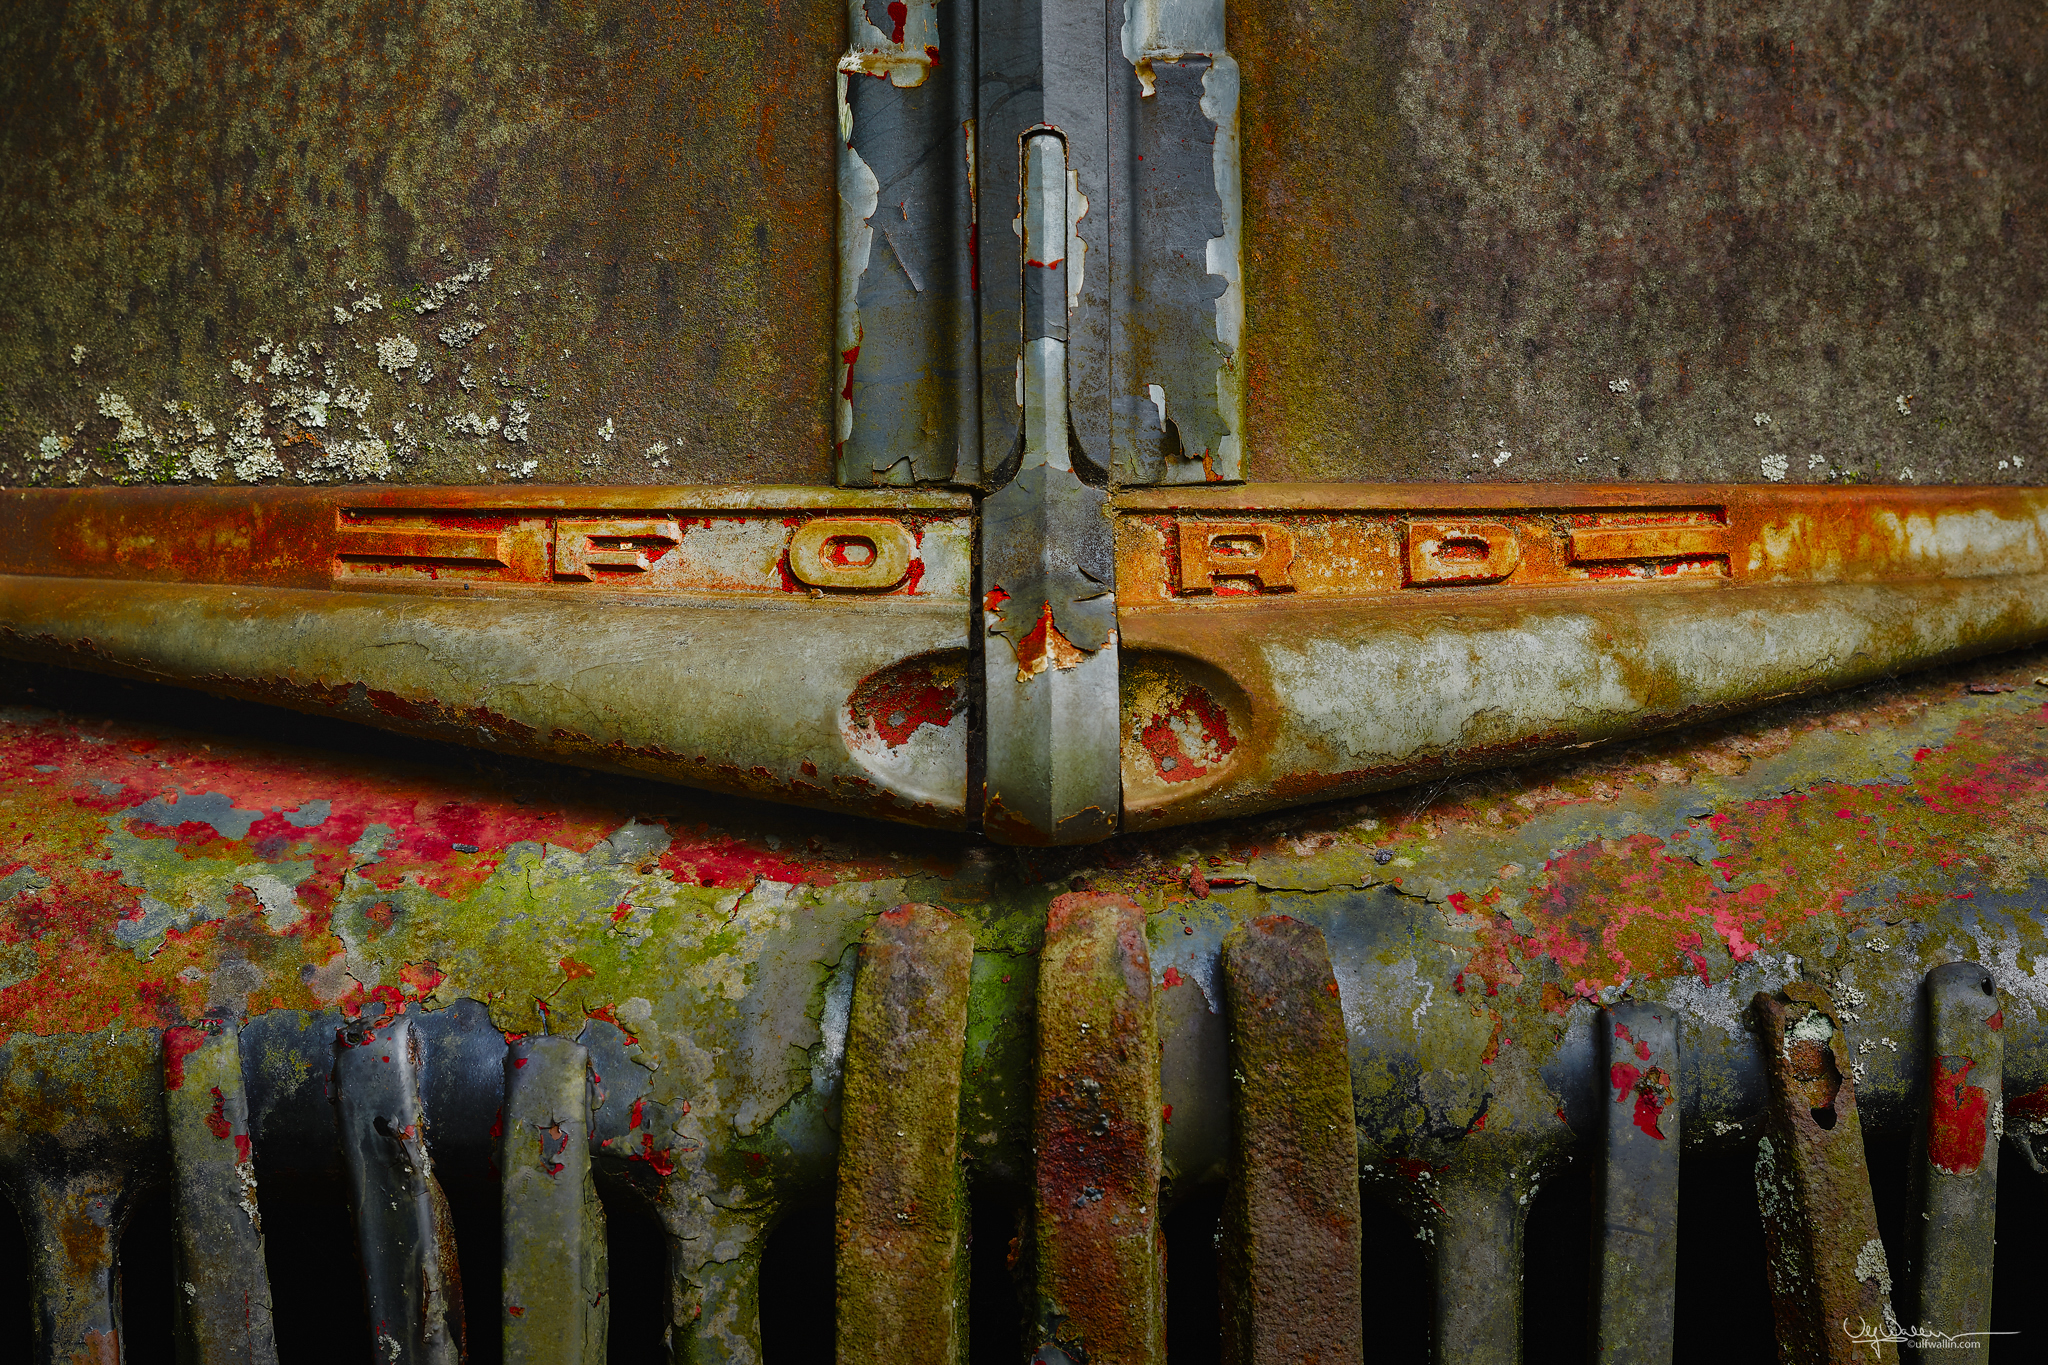 """From """"Rust Never Sleeps"""" series. Limited Edition Fine Art Prints available."""